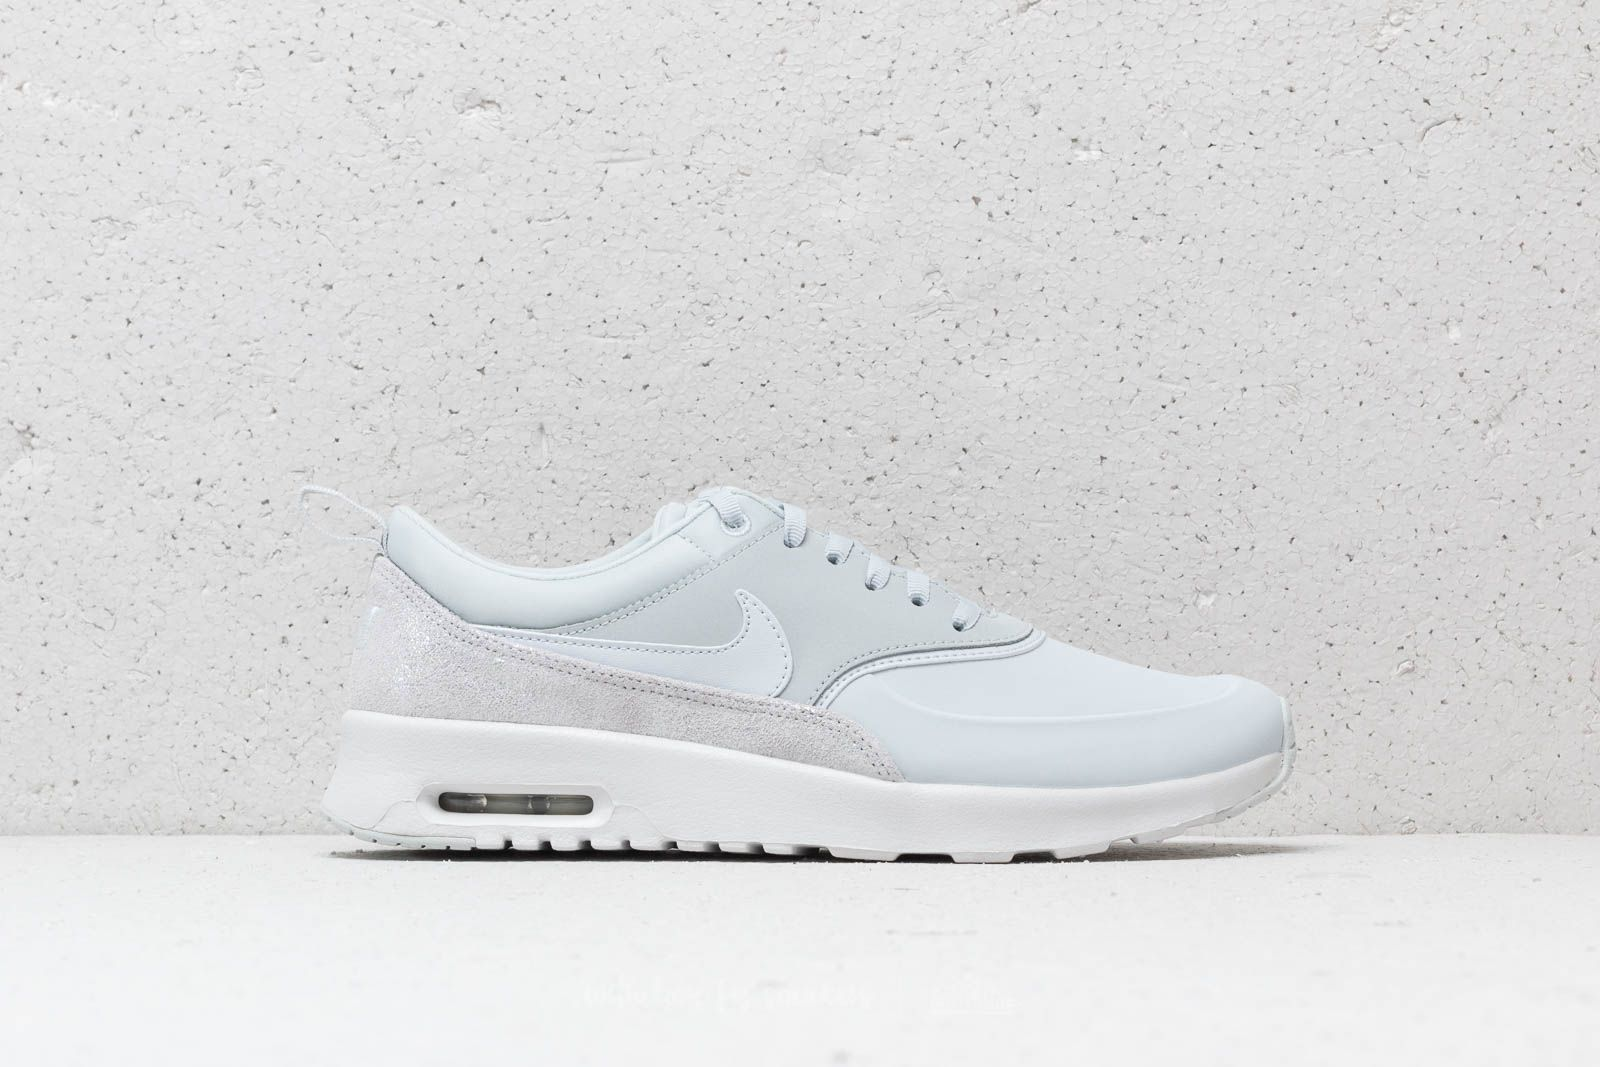 separation shoes 4c8ee bc5f6 Nike Air Max Thea Premium WMNS Pure Platinum  Pure Platinum at a great price  92